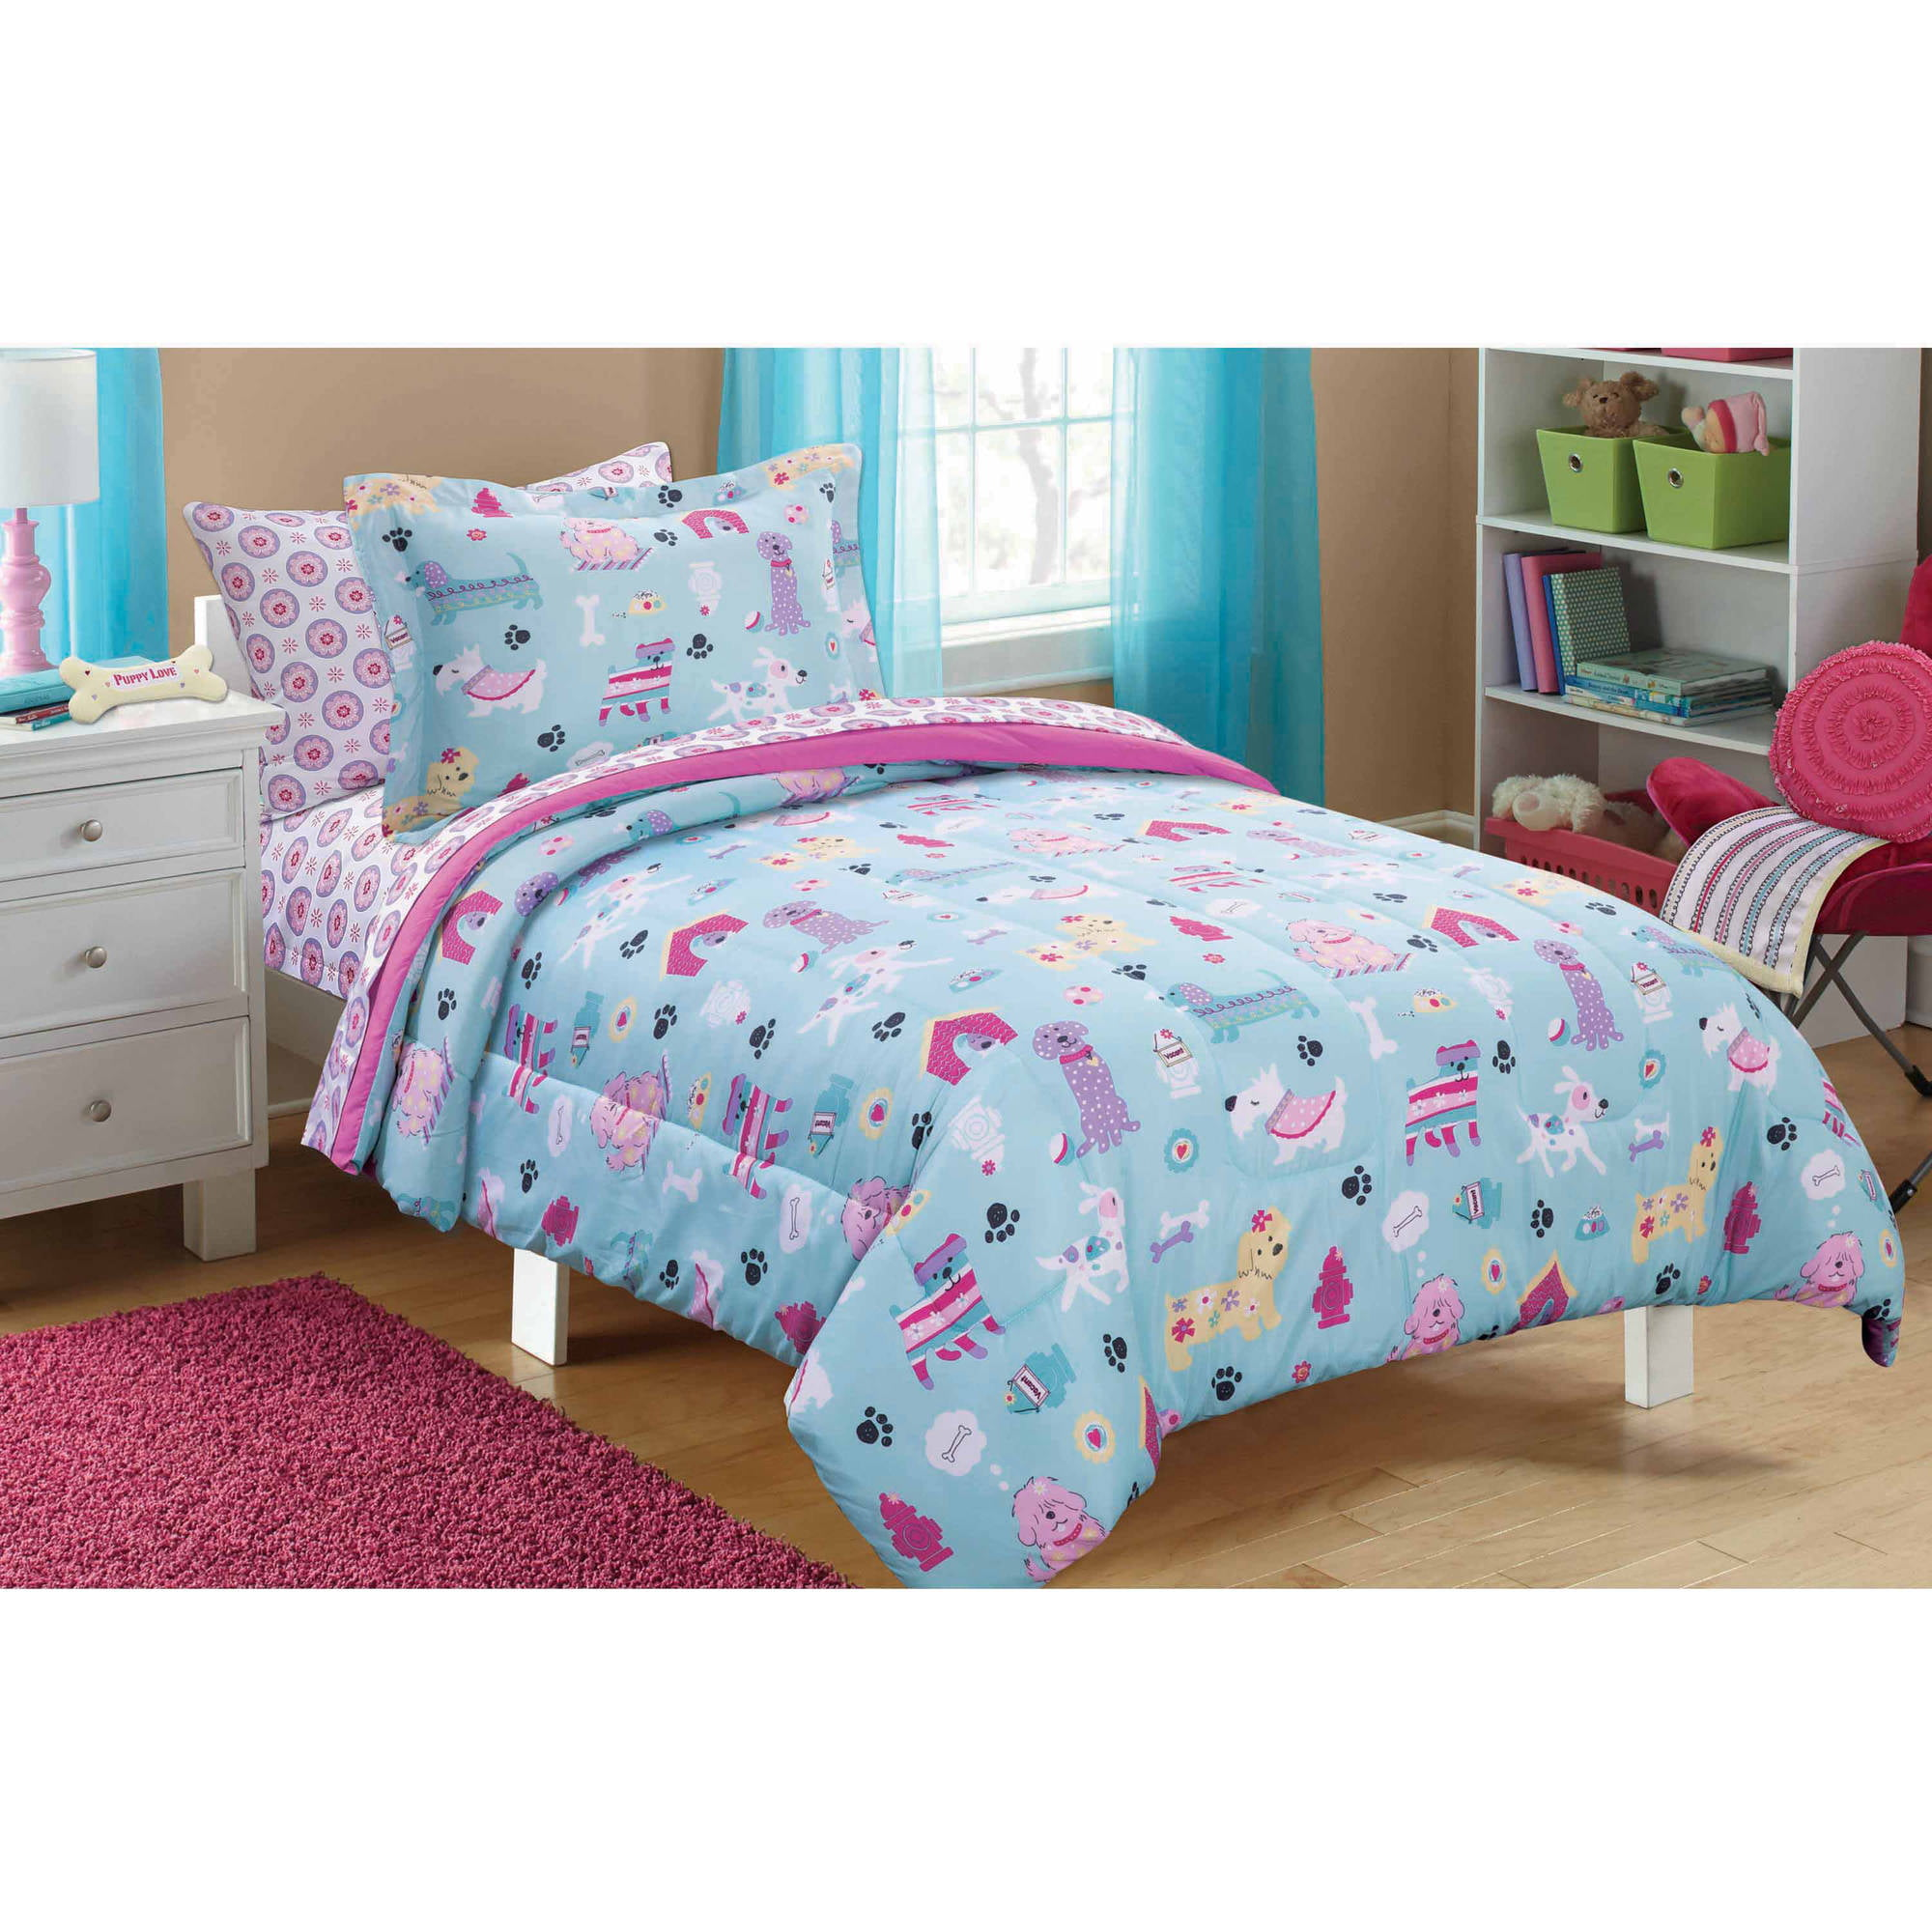 Kidz Mix Unicorn Bag Bedding Set Walmart